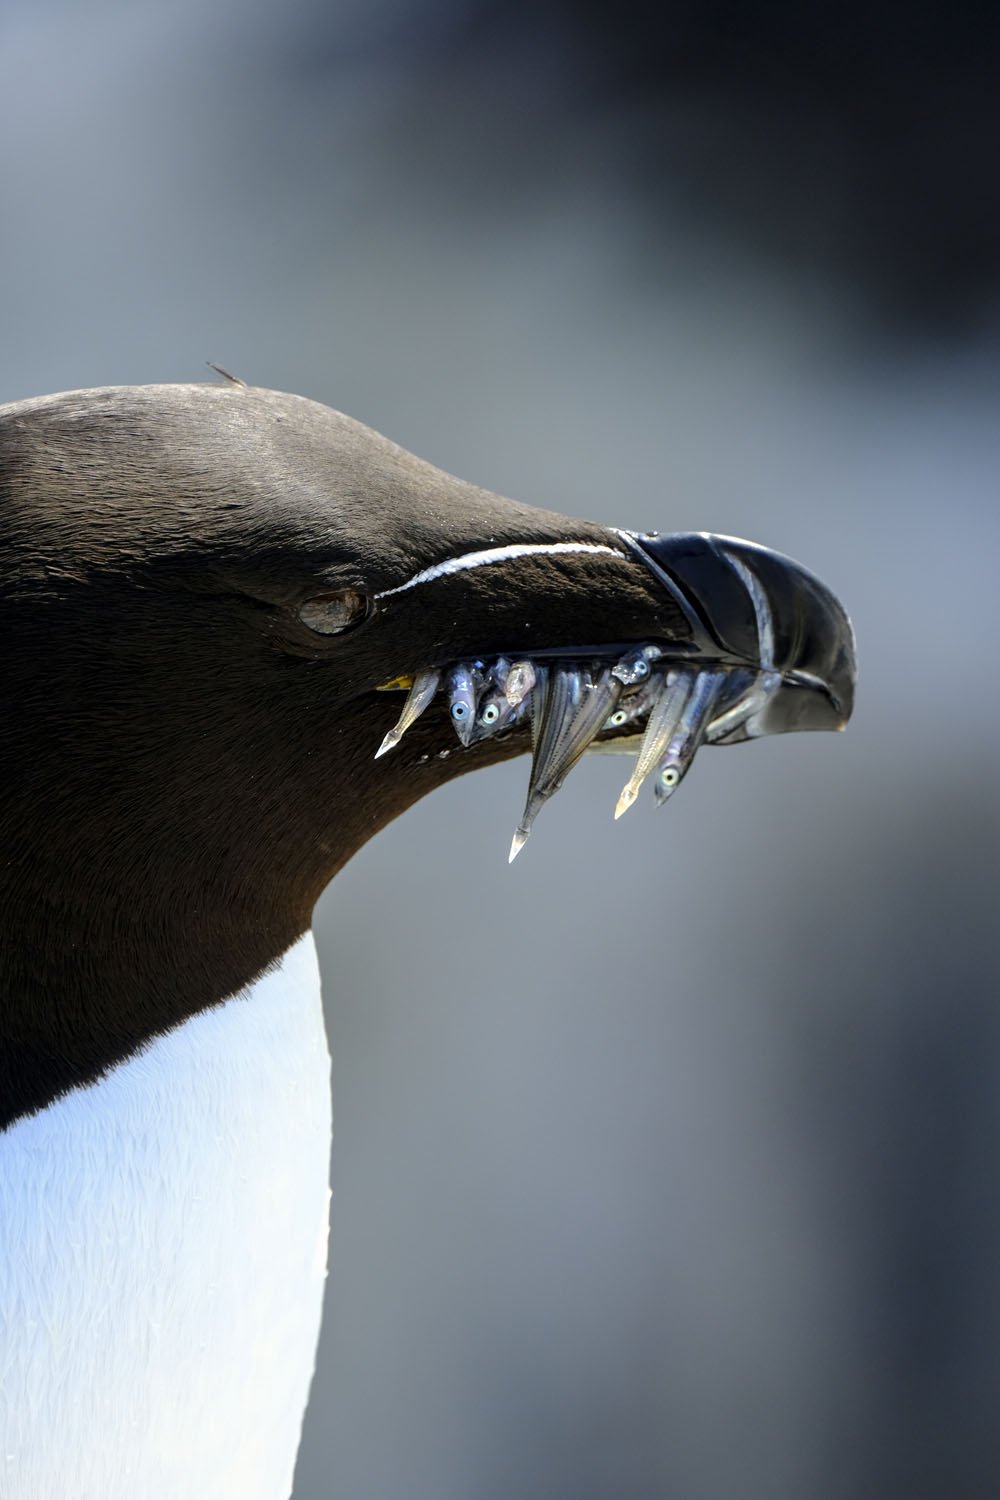 Pin Point focus – using the AF joystick to keep focus on the razorbills eye. EXIF – X-T2, XF100-400mmF4.5-5.6 R LM OIS WR, F8, 400mm, ISO800, 1/480, Velvia